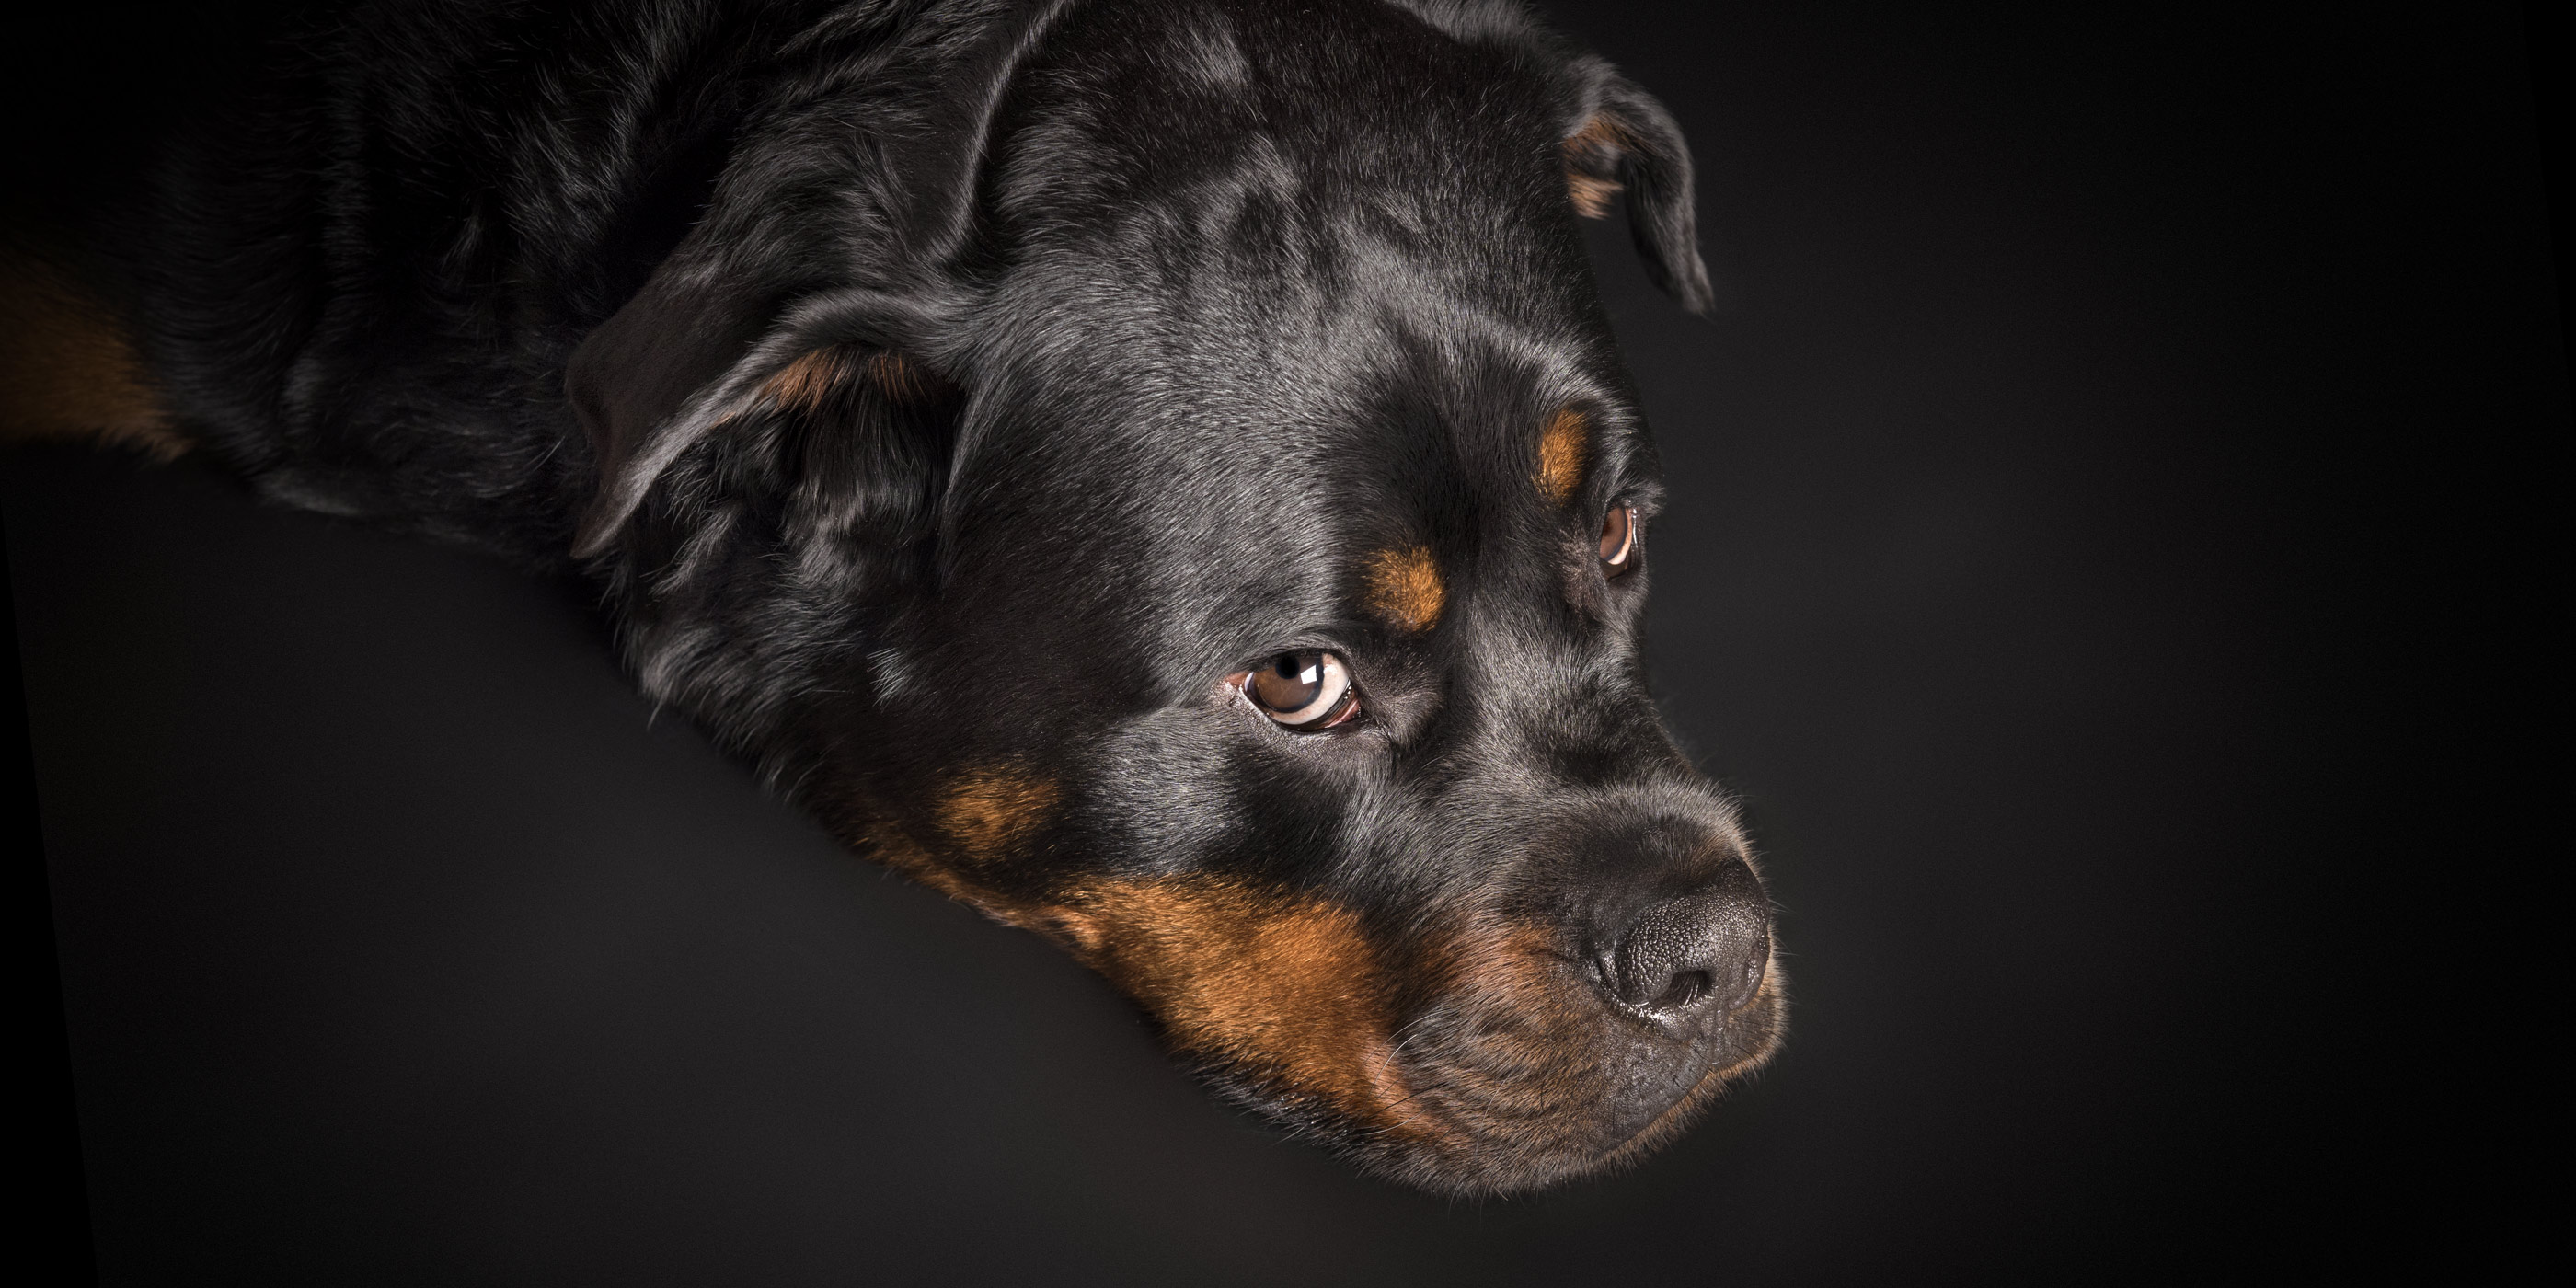 deep in thought black and tan rottweiler